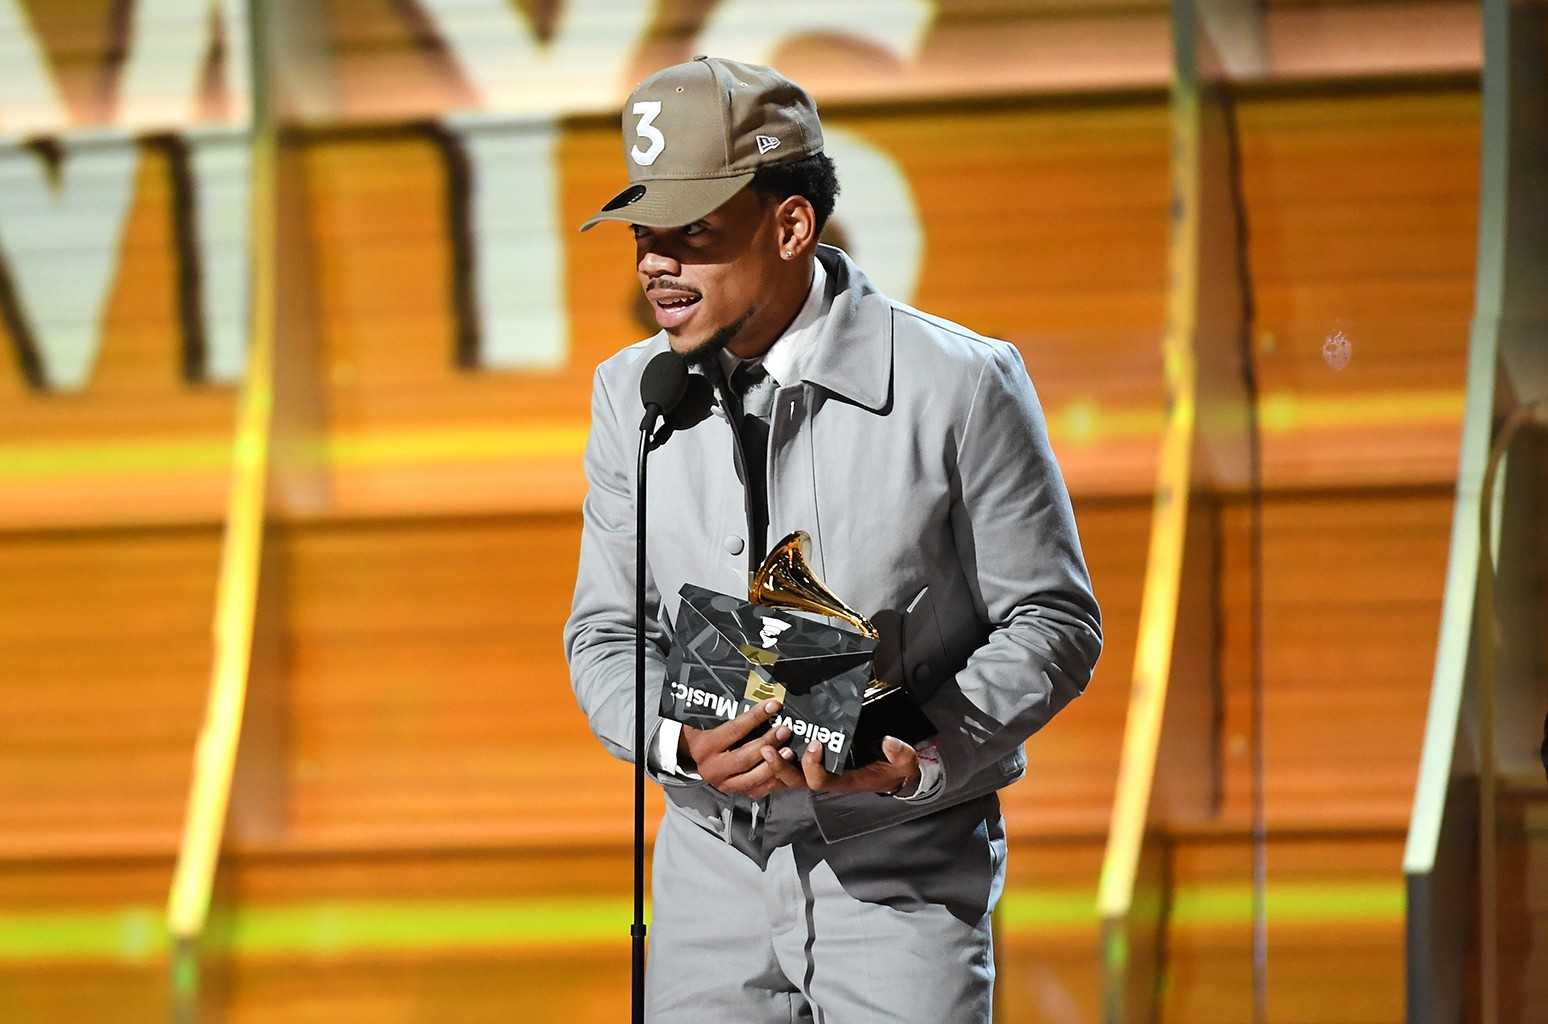 Chance the Rapper accepts the award for Best New Artist, onstage during The 59th Grammy Awards at Staples Center on Feb. 12, 2017 in Los Angeles.